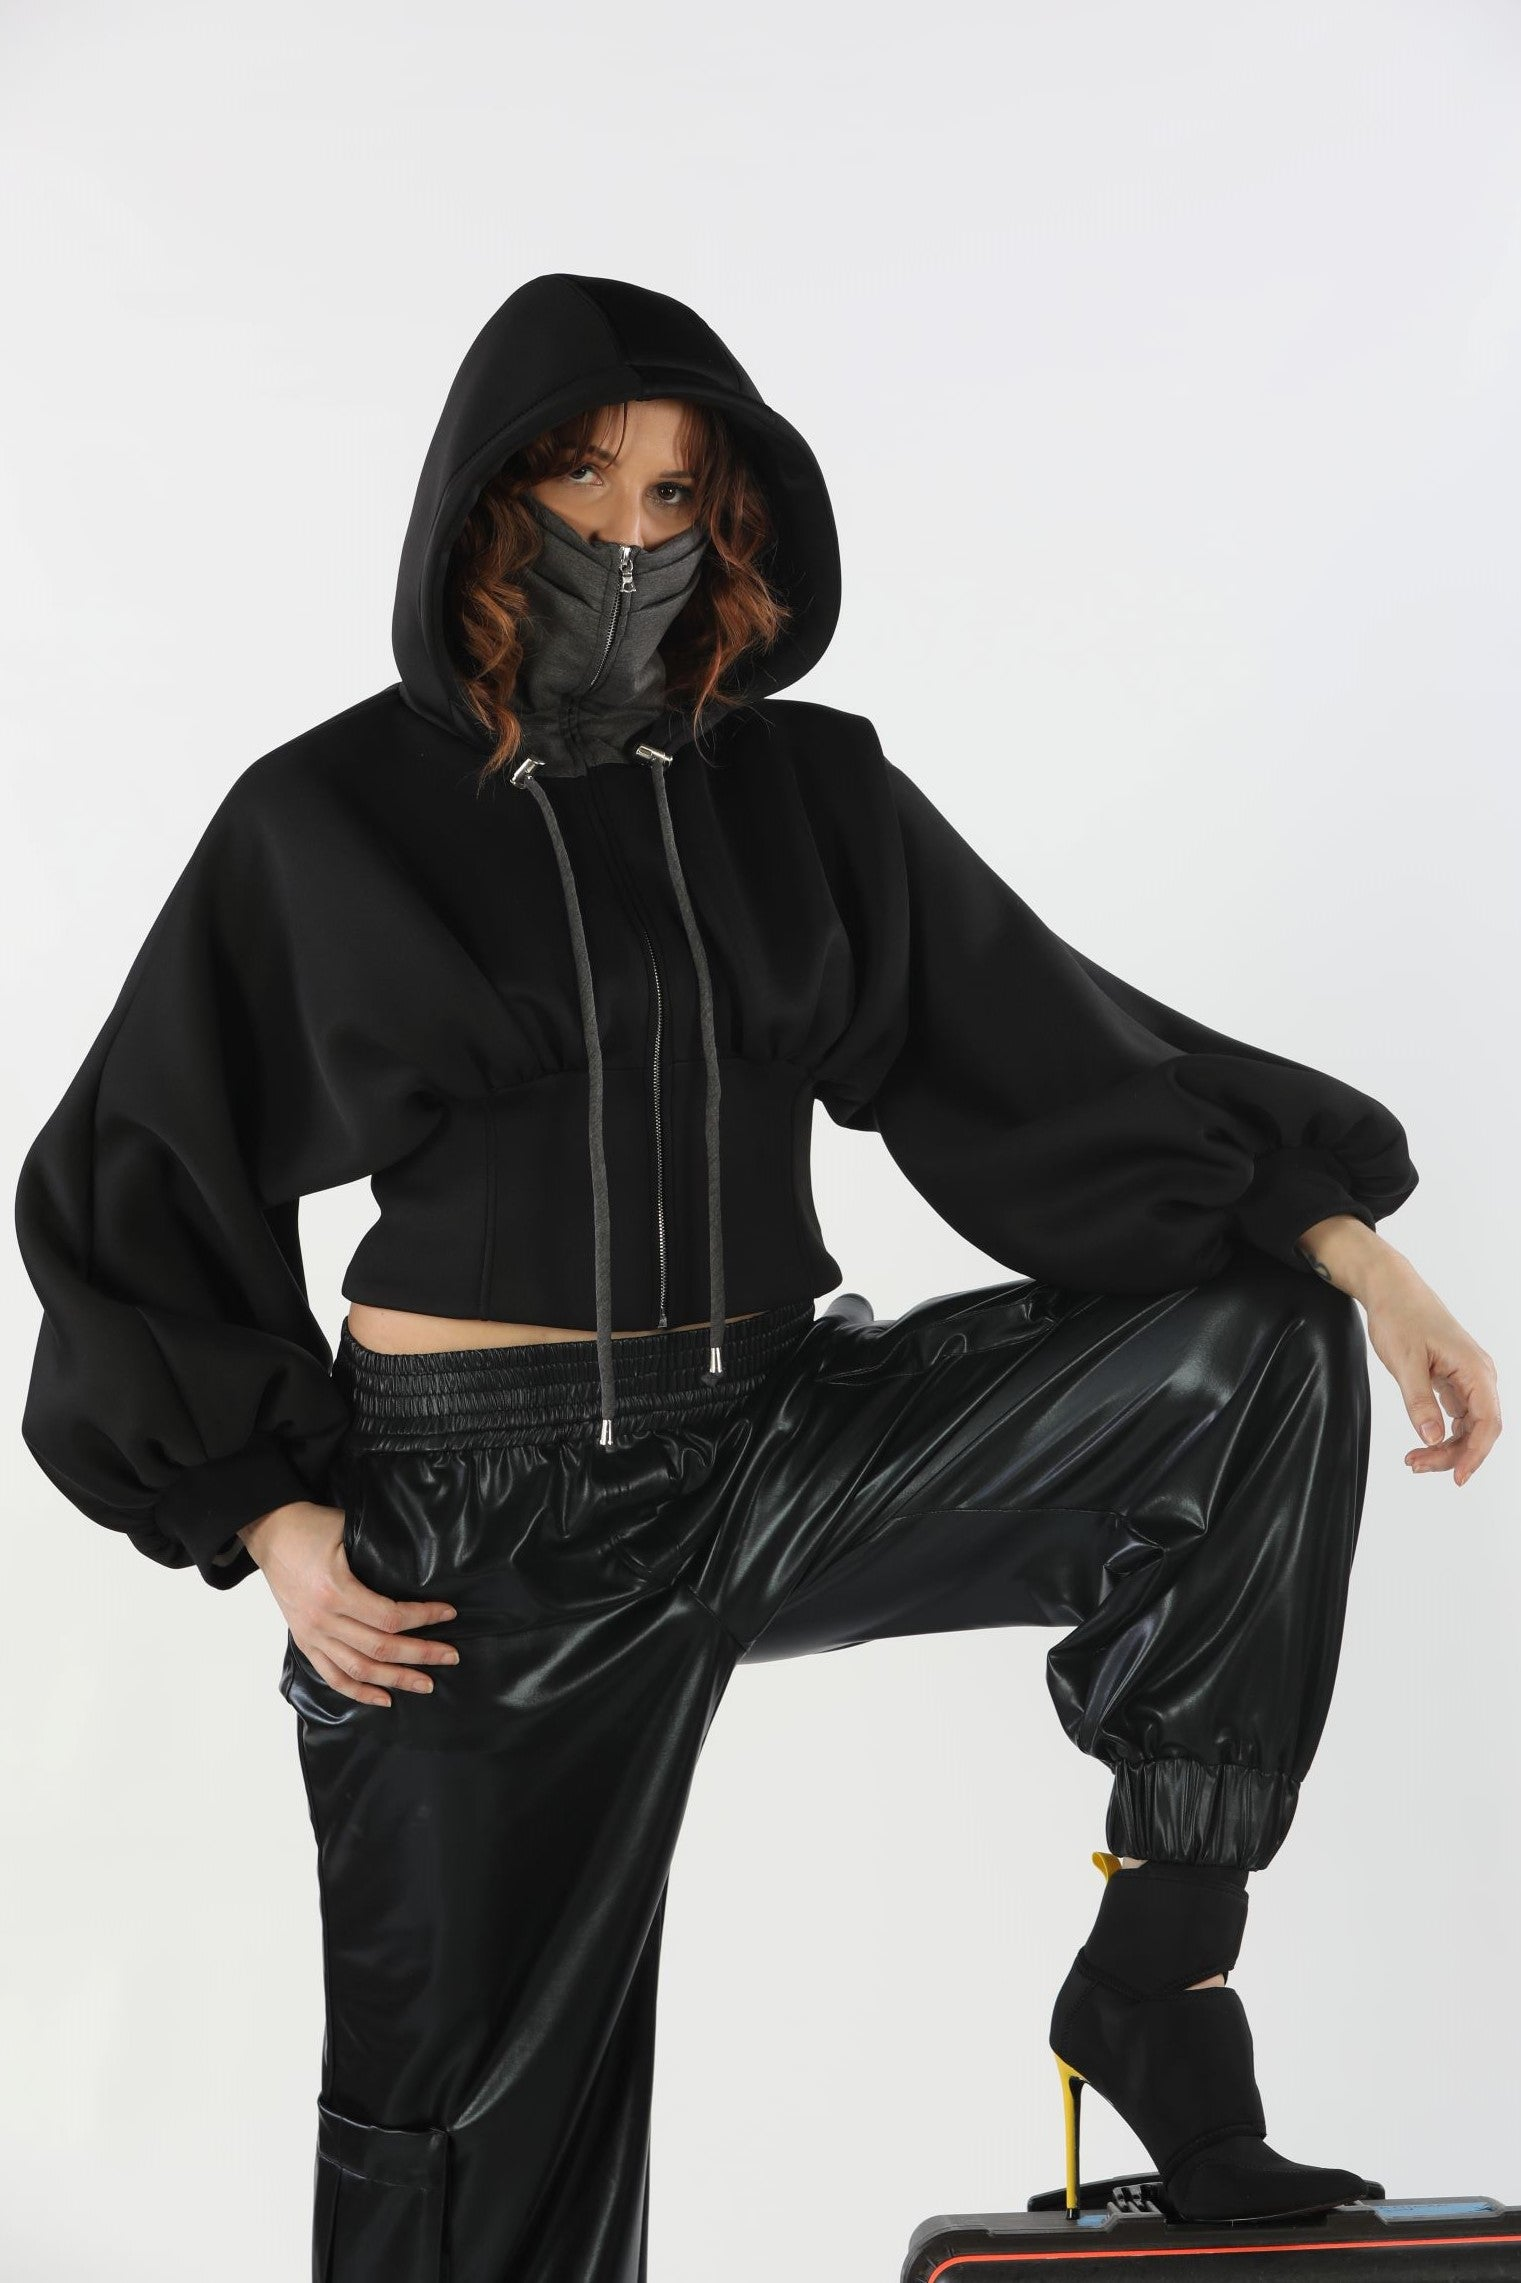 Dolman Sleeves Boned Waistline Top with attachable mask